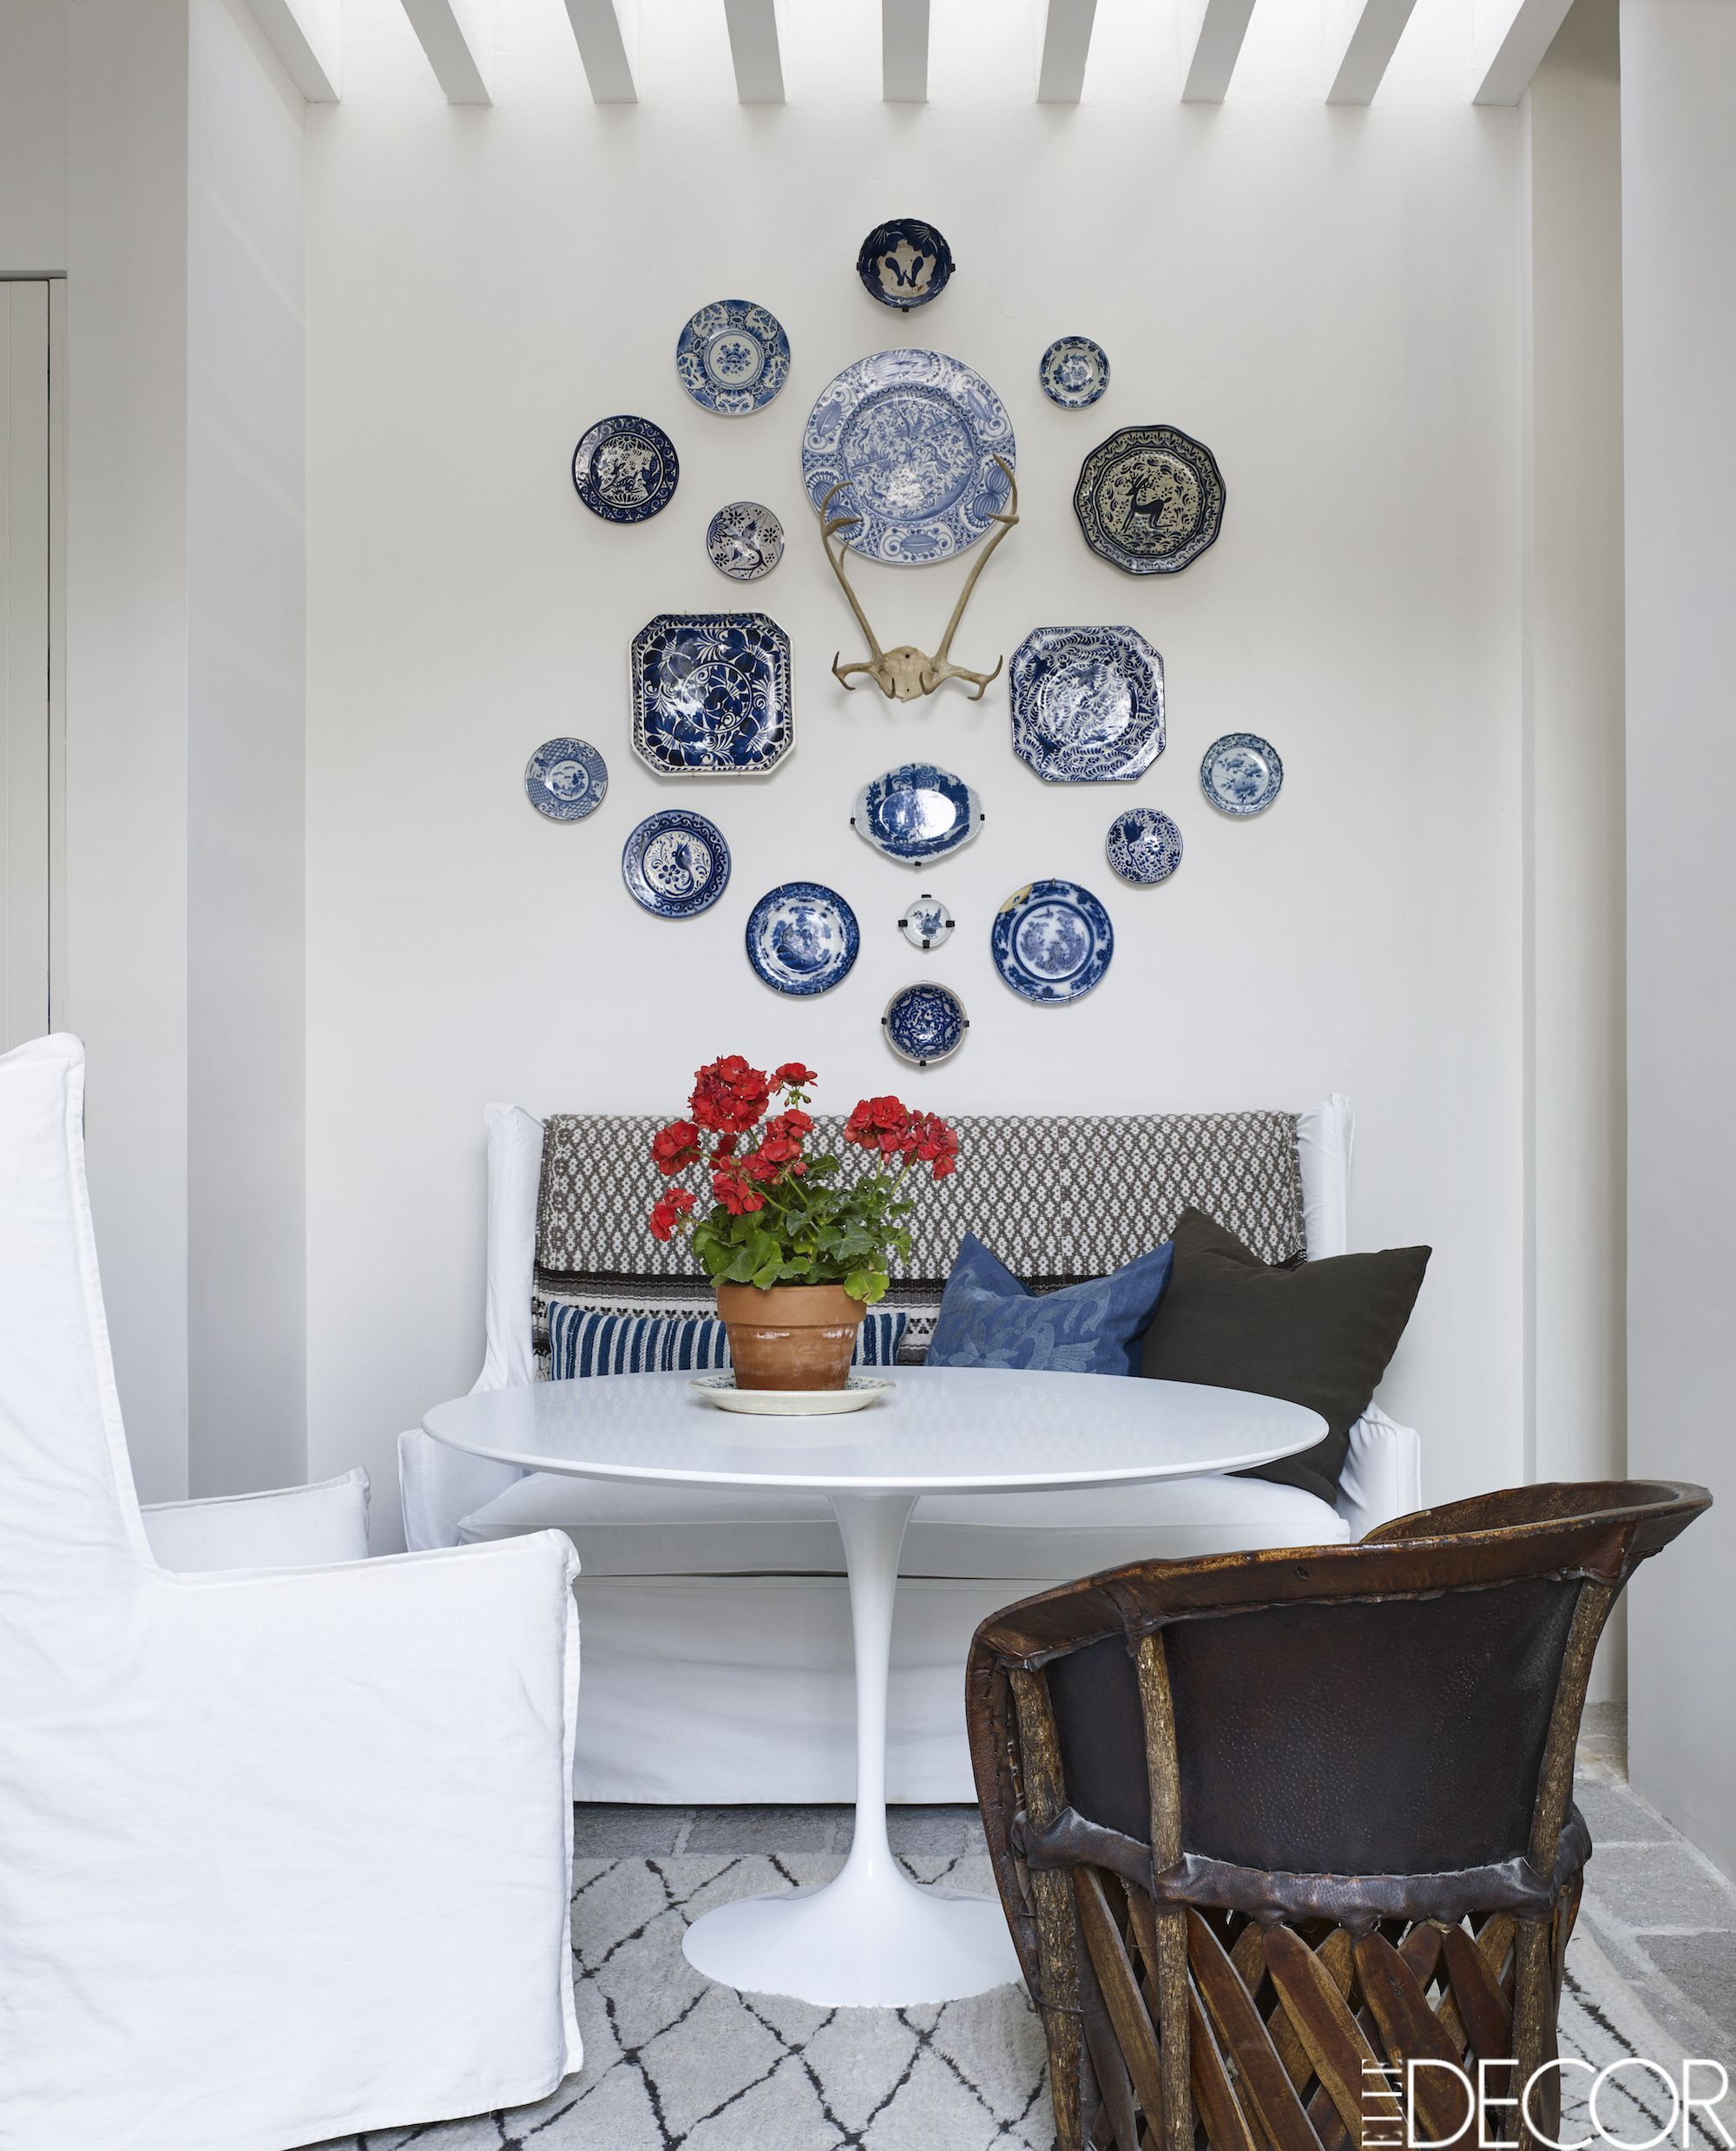 white wall decorations living room large clocks for 46 decorating ideas how to use paint decor